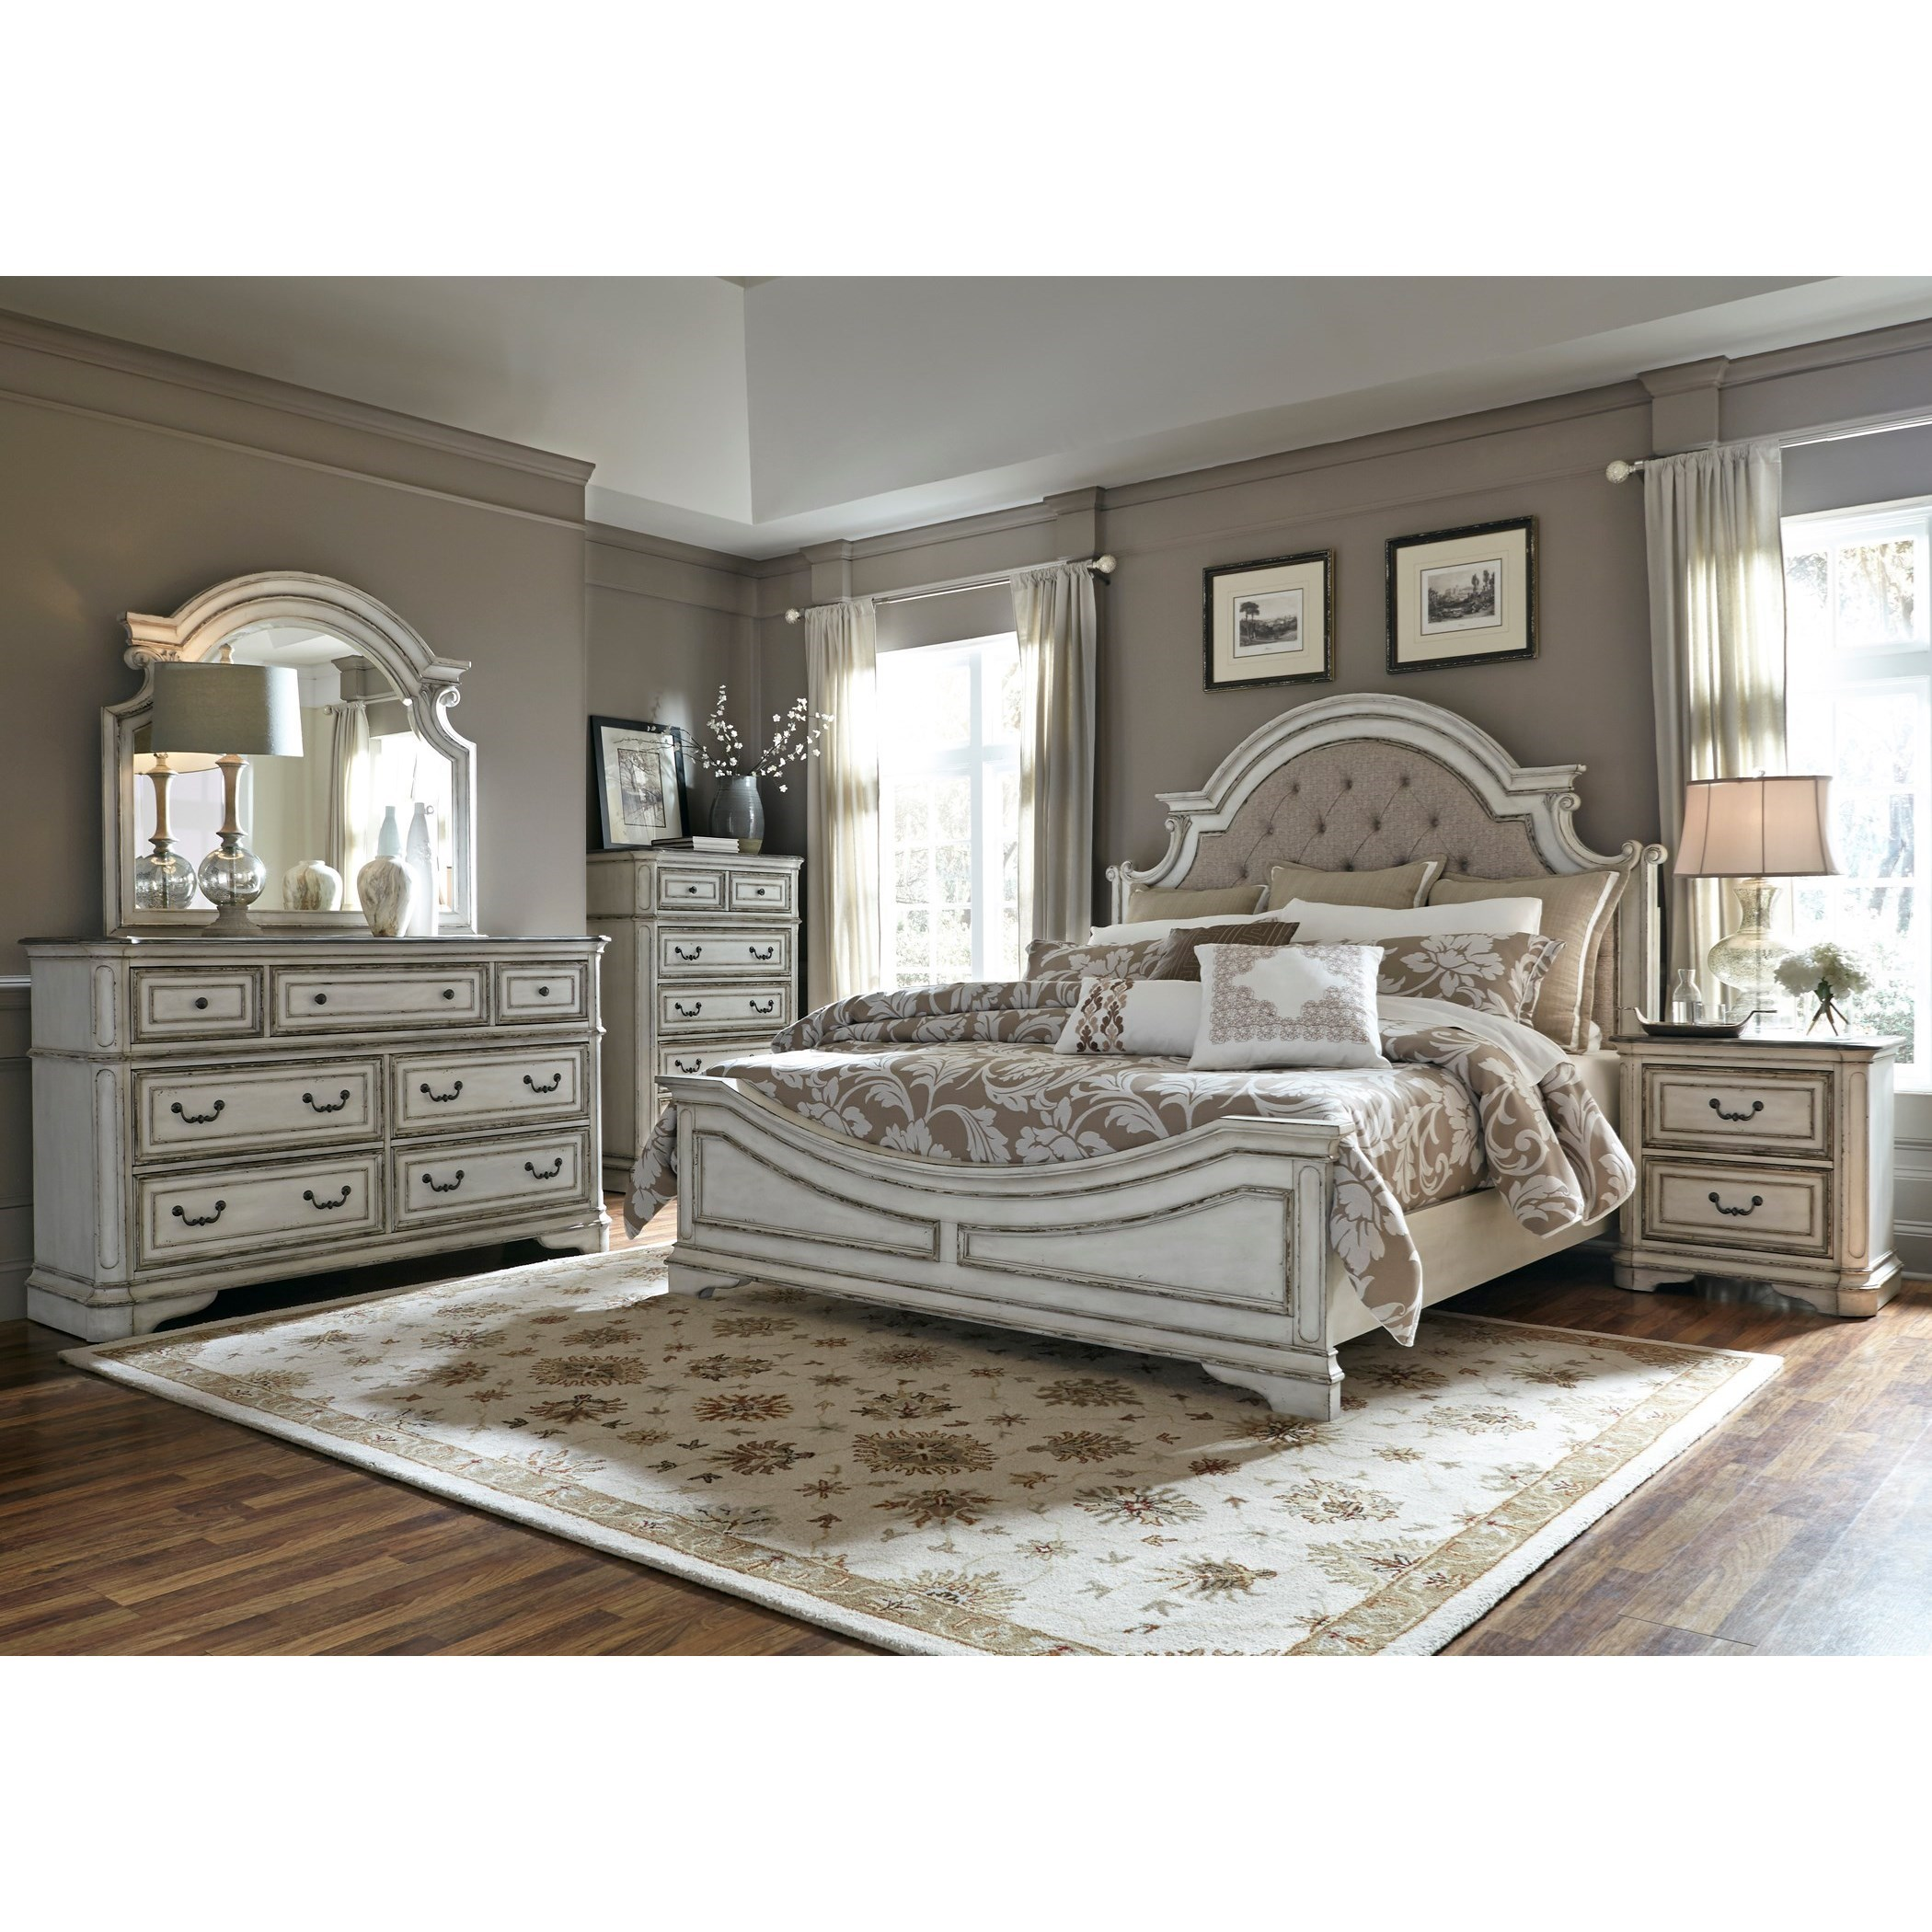 Liberty furniture magnolia manor 244 br kub king for Womens bedroom furniture